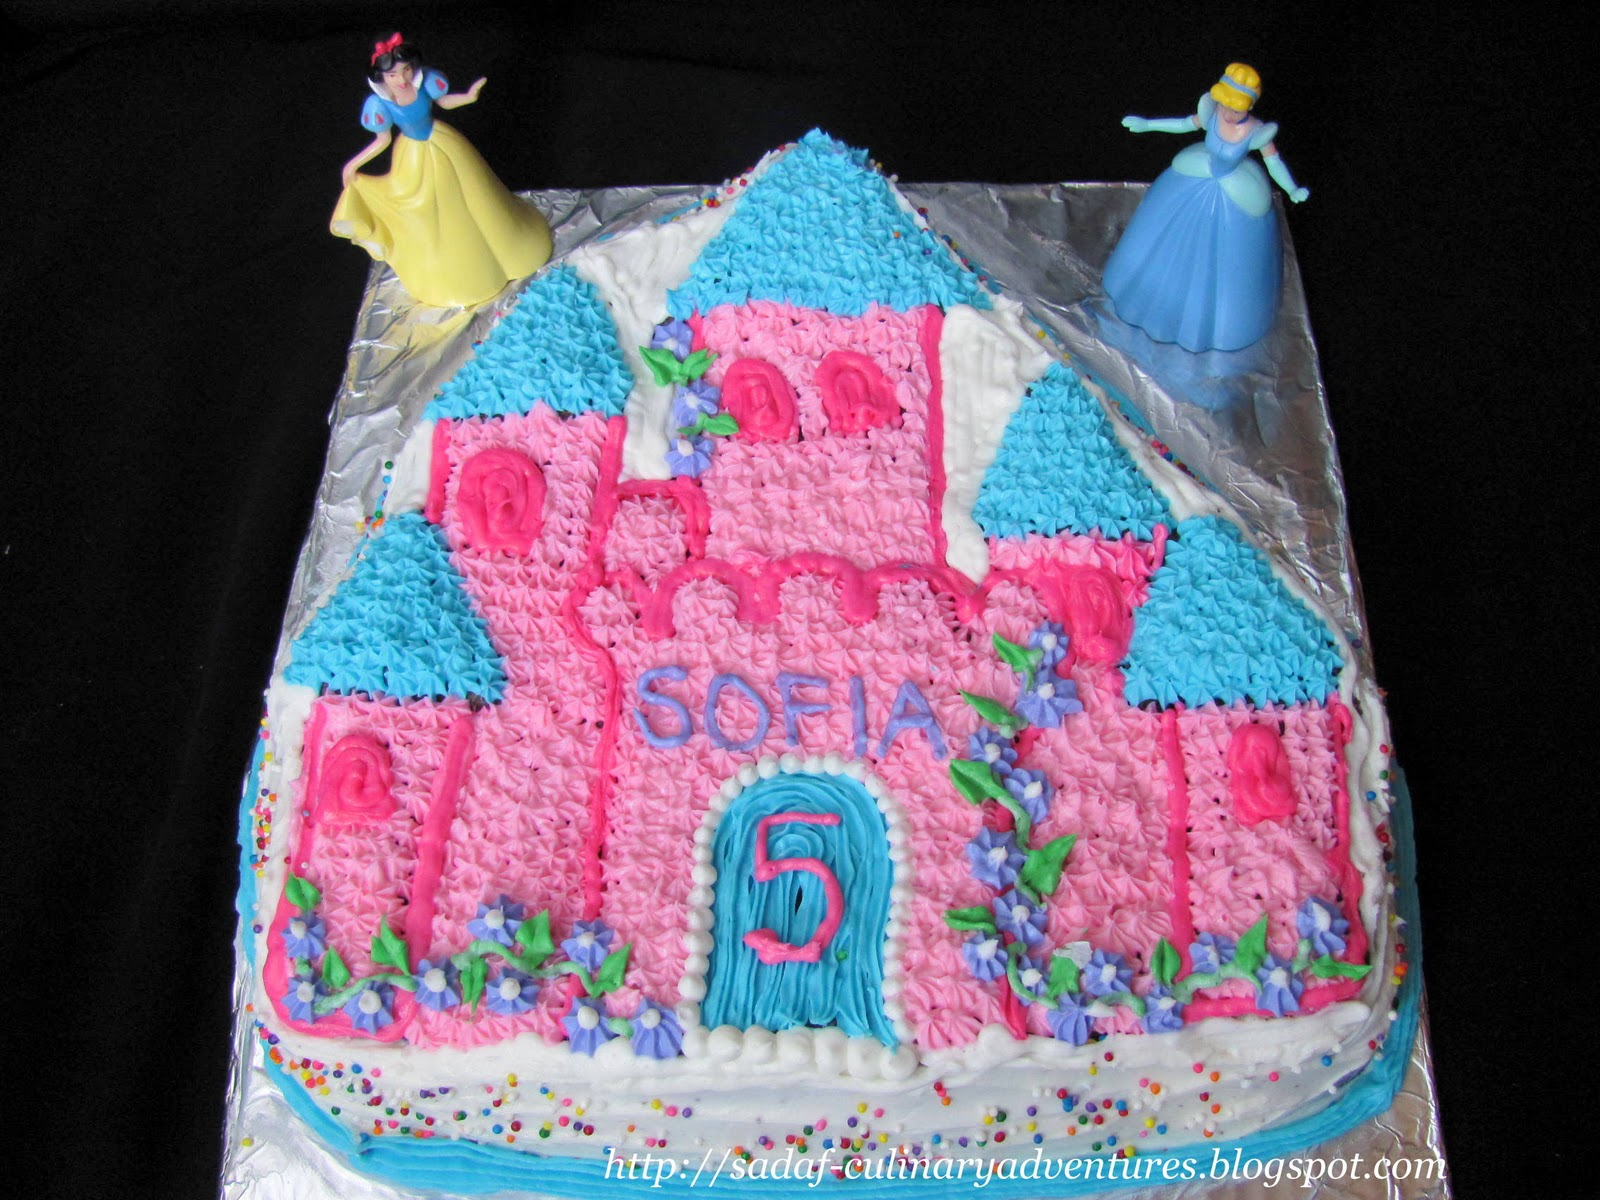 Enchanted Castle Cake My Culinary Adventures